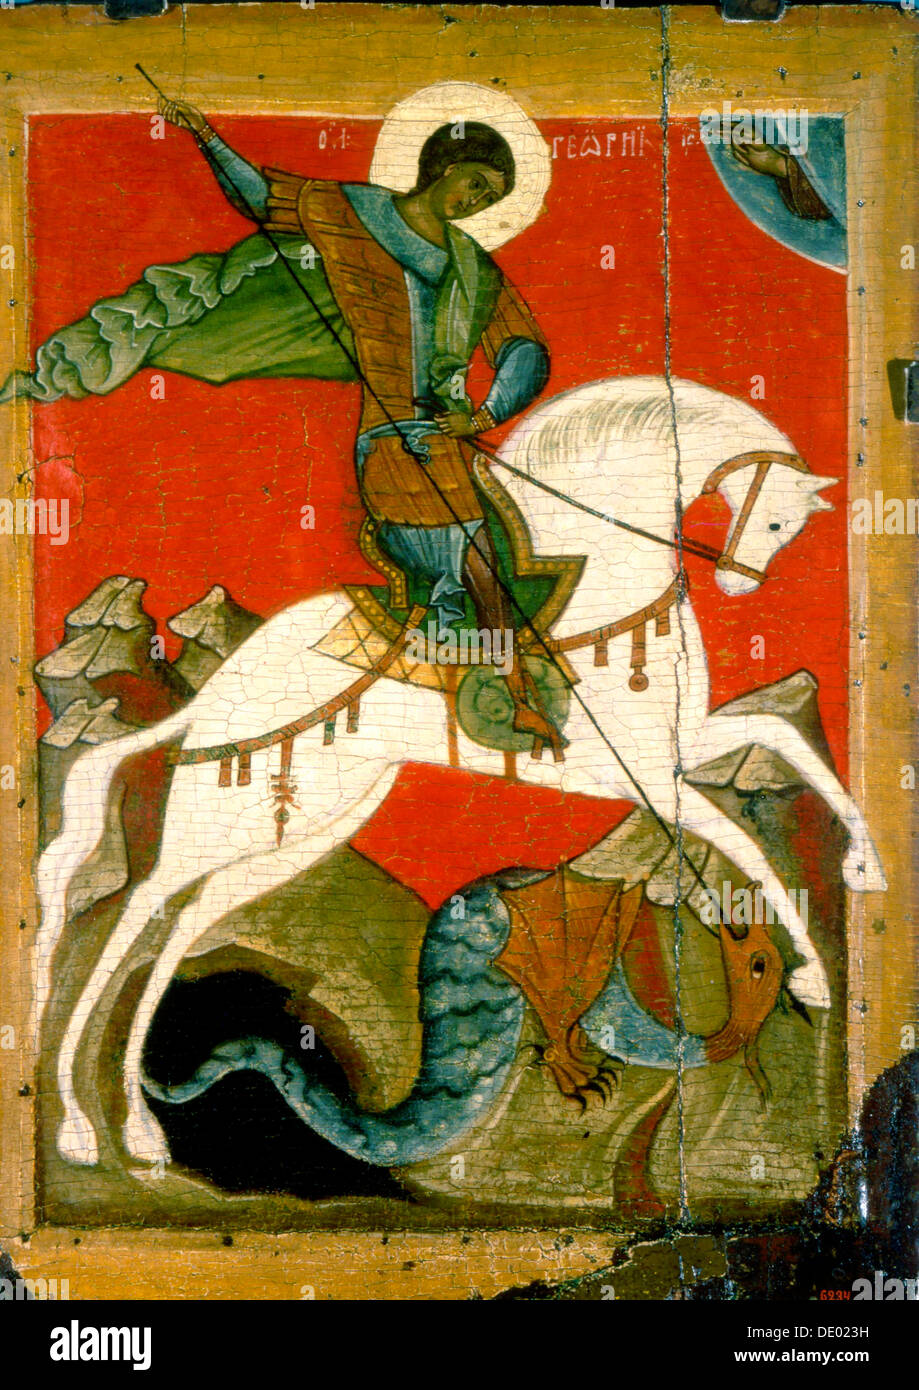 'Saint George and the Dragon', late 14th century. - Stock Image